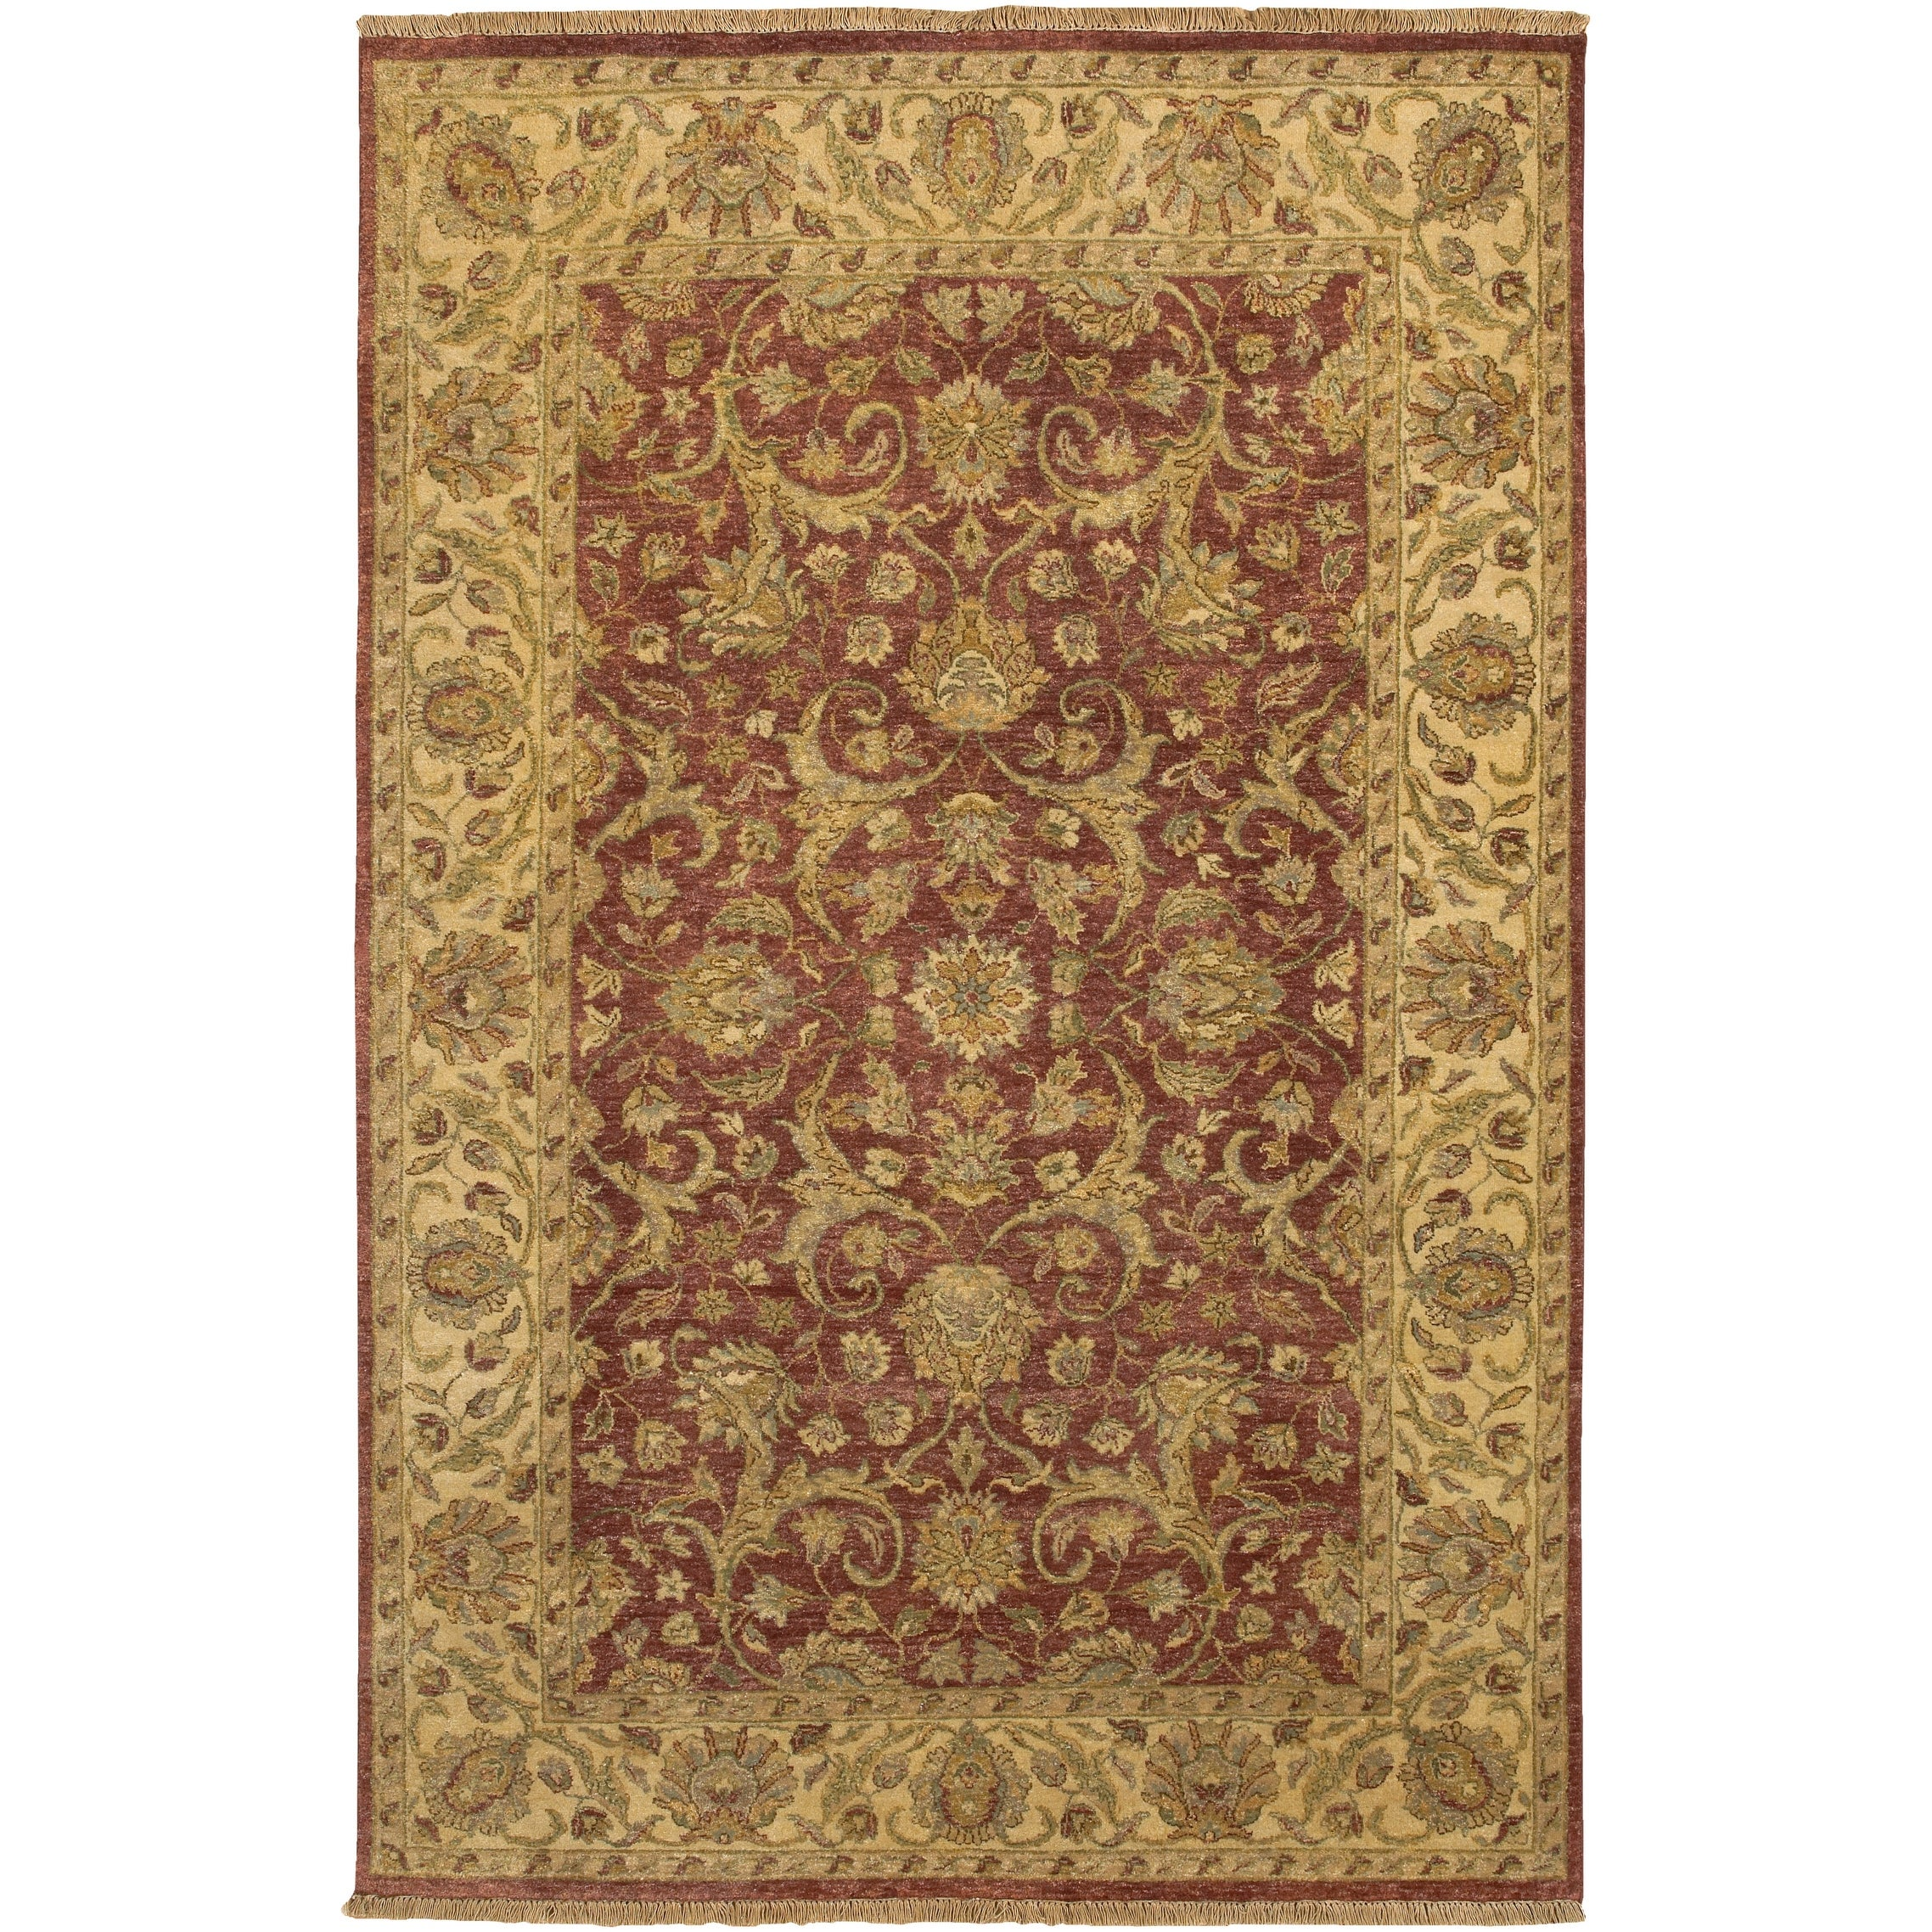 "Hand-knotted Legacy New Zealand Hard-twist Wool Area Rug - 5'6"" x 8'6"""